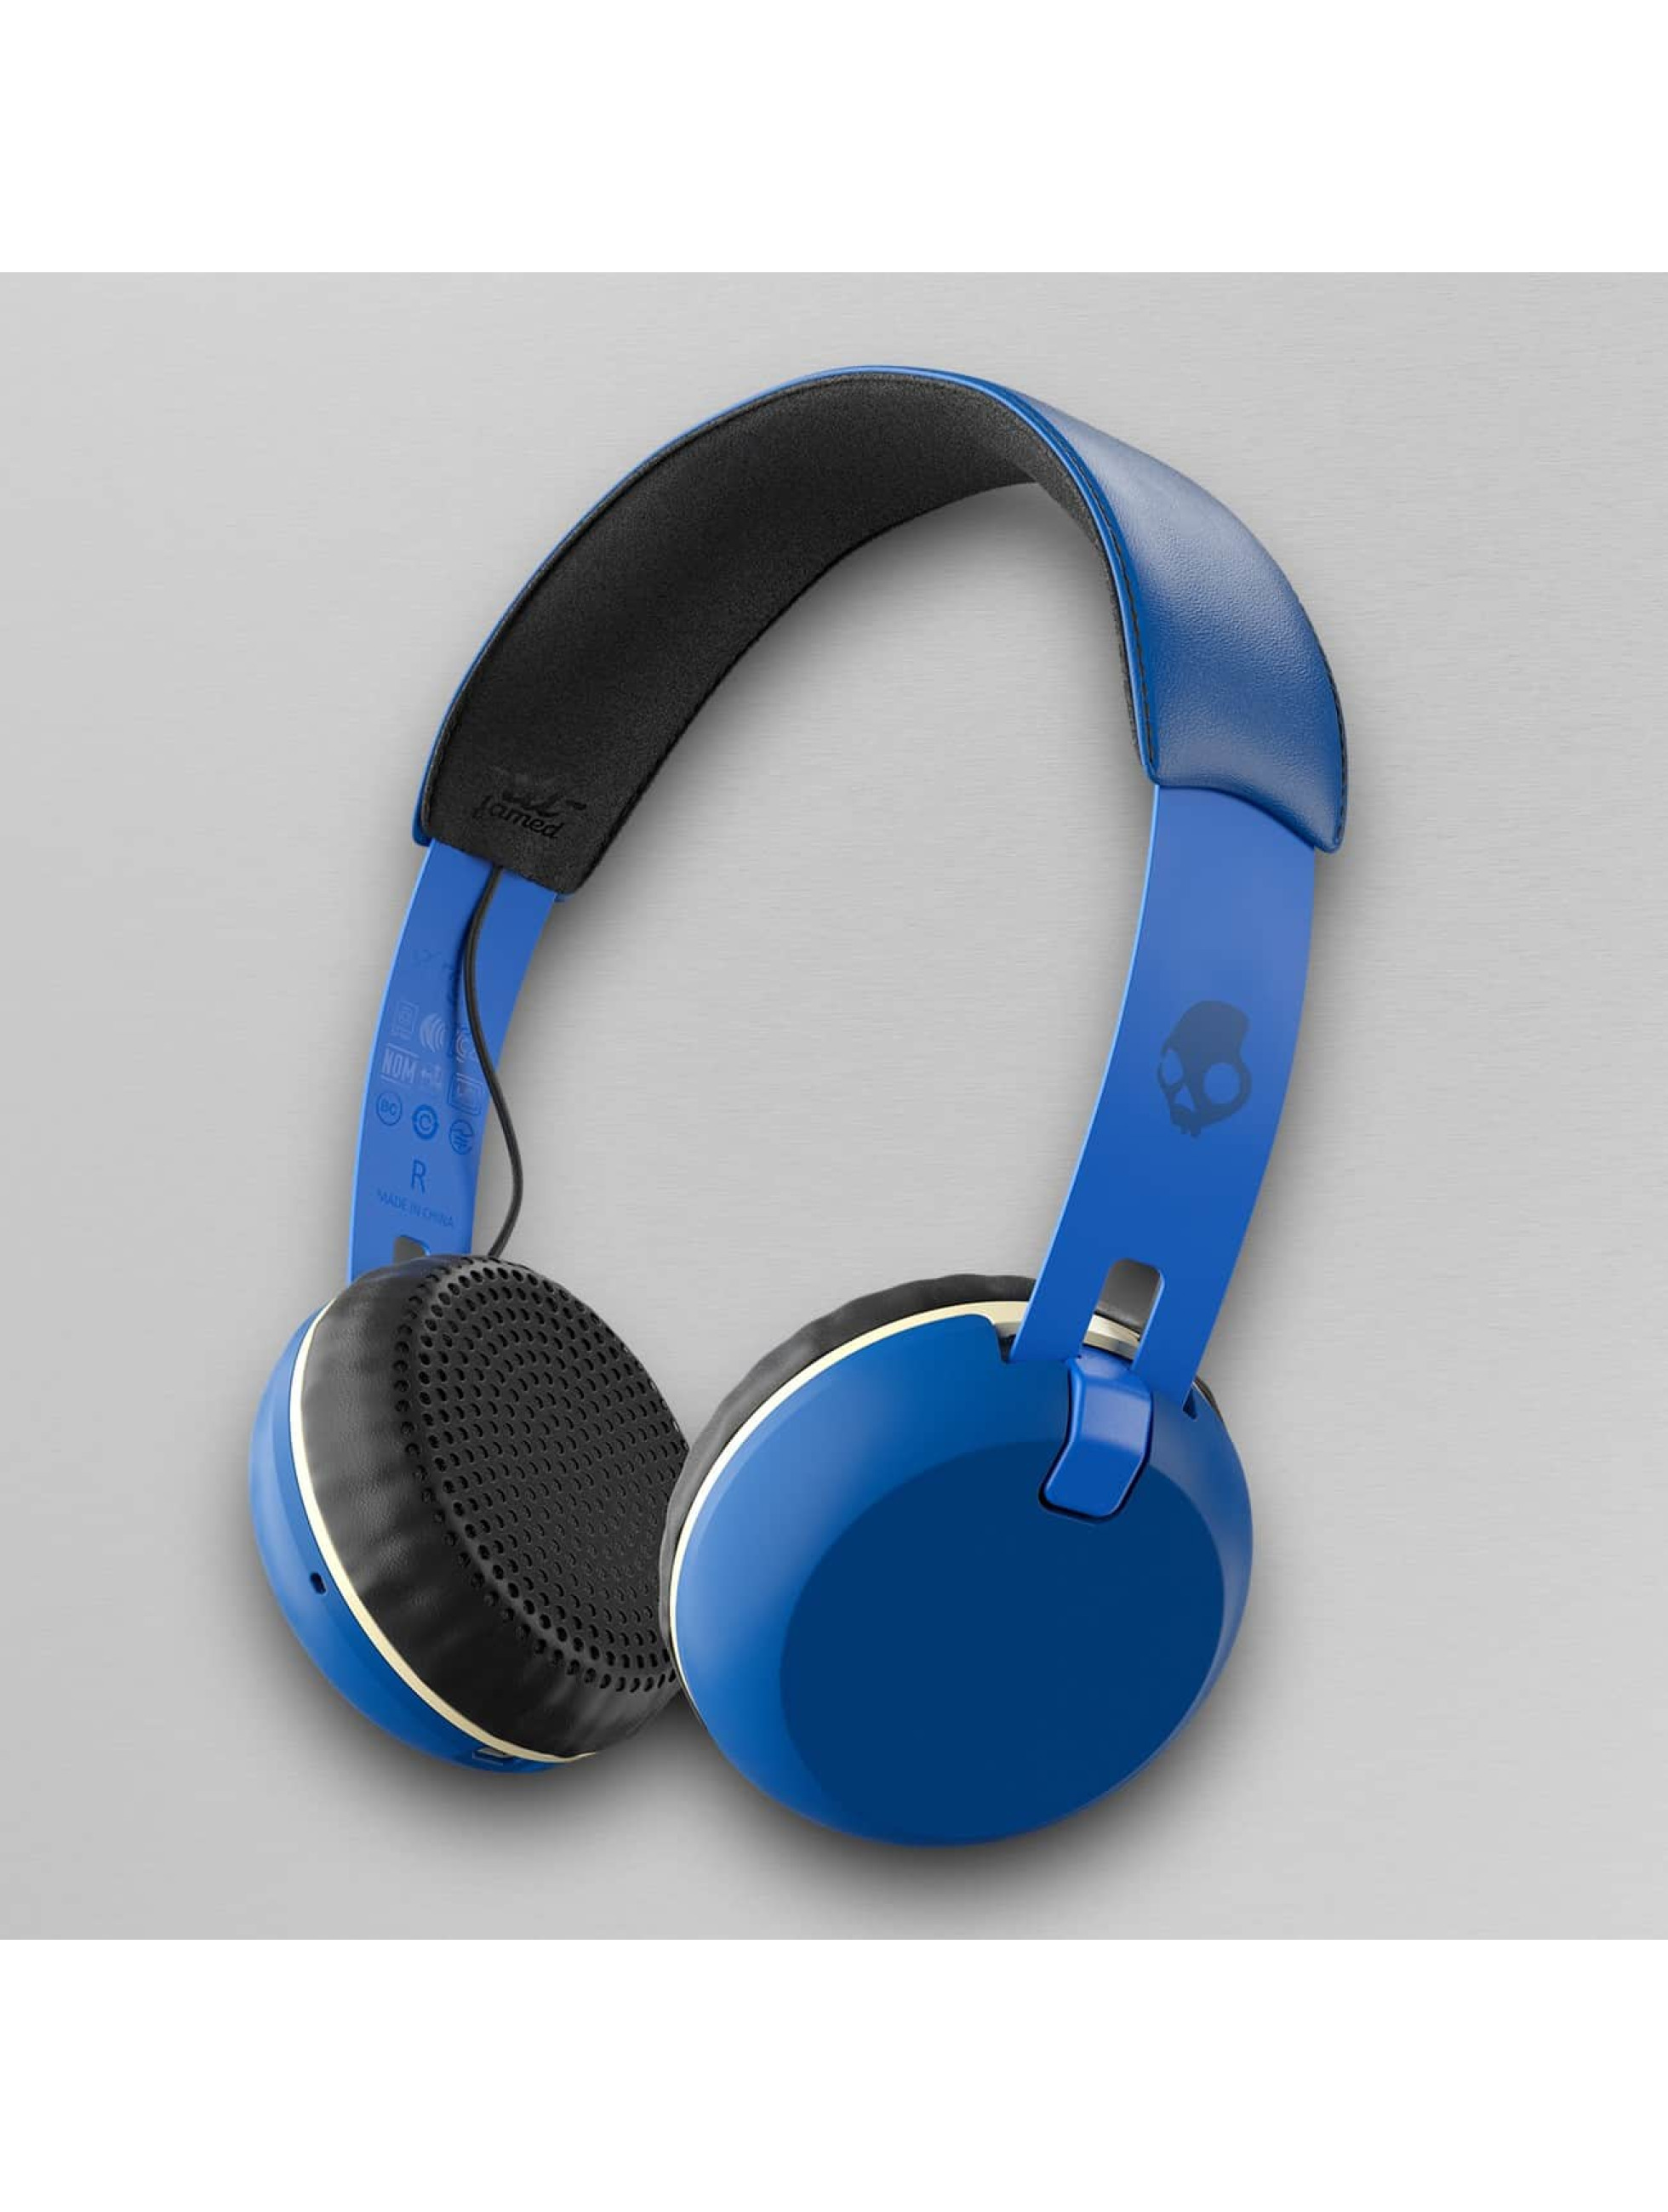 Skullcandy Sluchátka Grind Wireless On Ear modrá